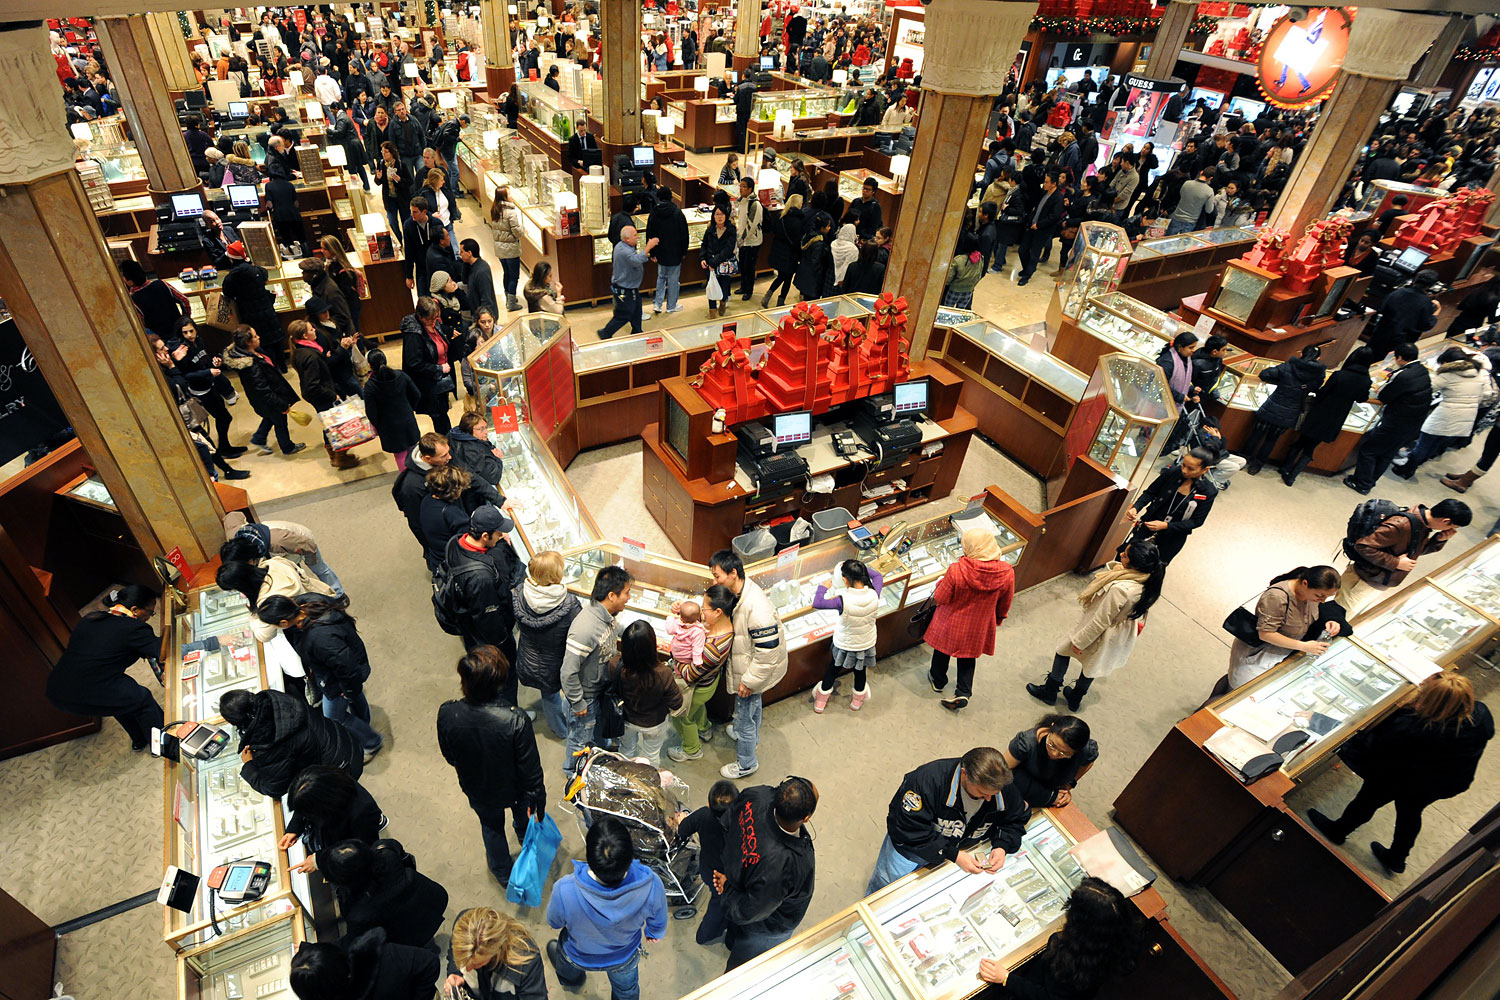 People crowd the aisles inside Macy's department store on Nov. 25, 2011 in New York after the midnight opening to begin the  Black Friday  shopping weekend.